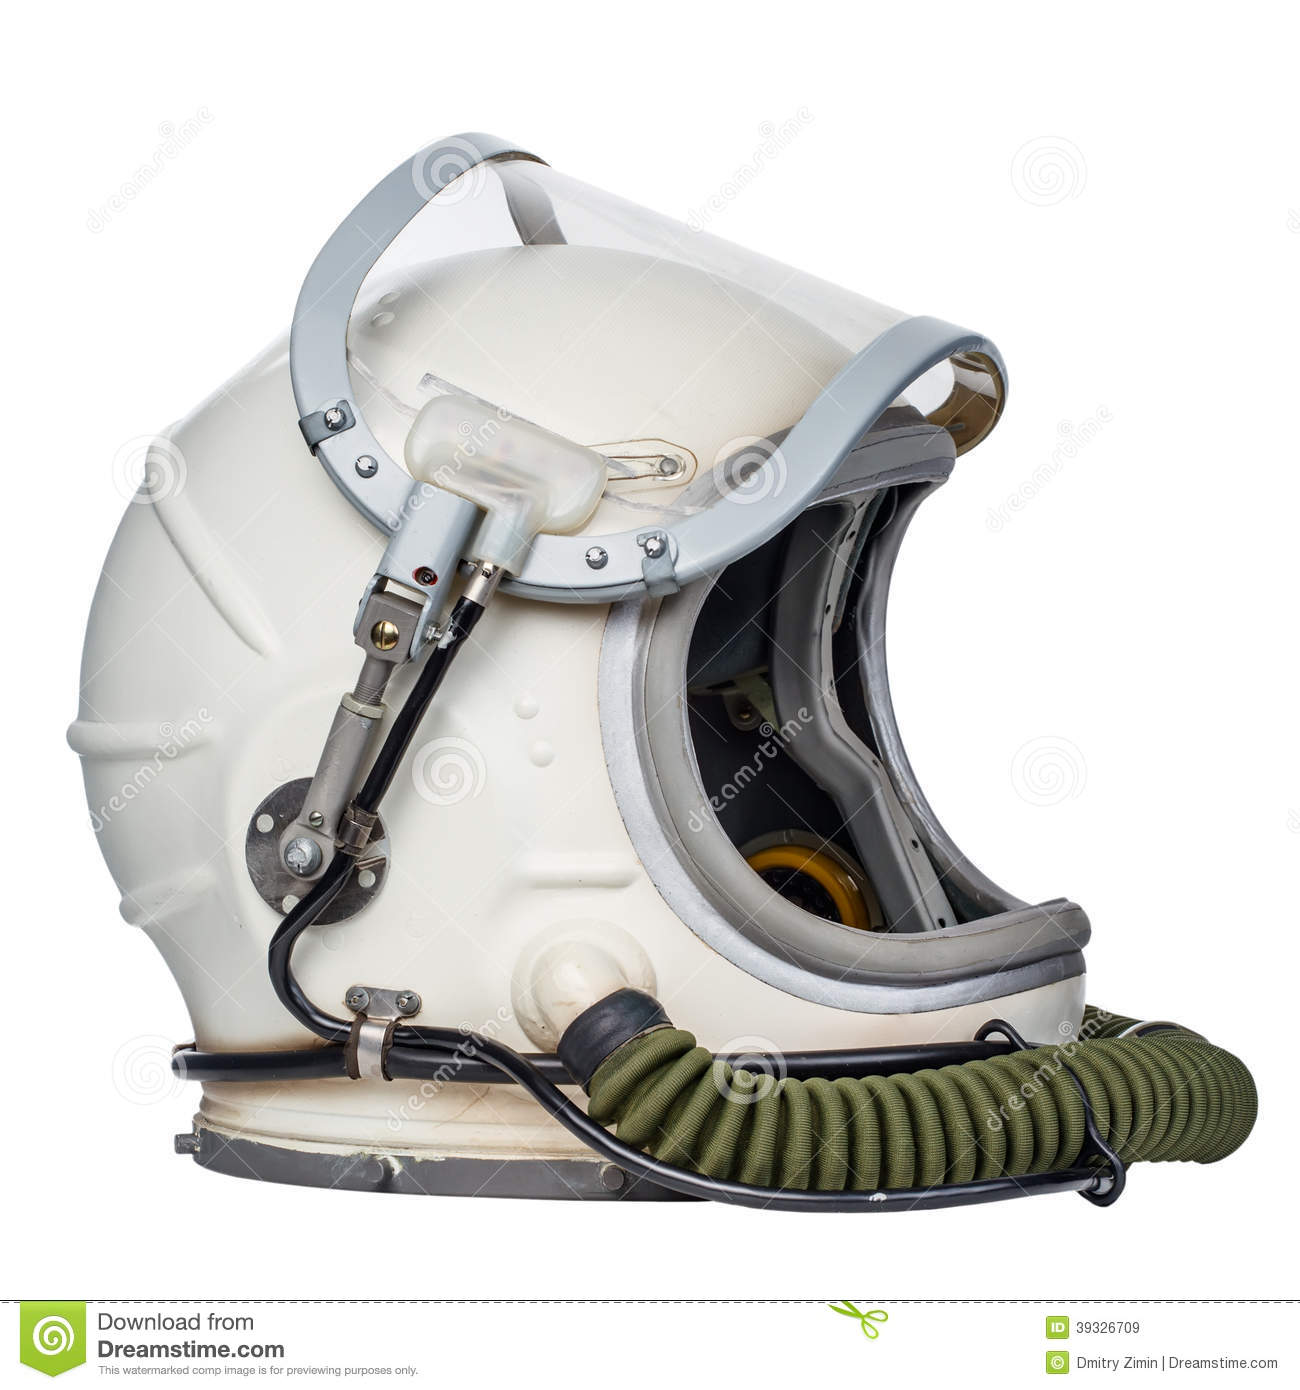 Vintage Space Helmet Stock Photo - Image: 39326709